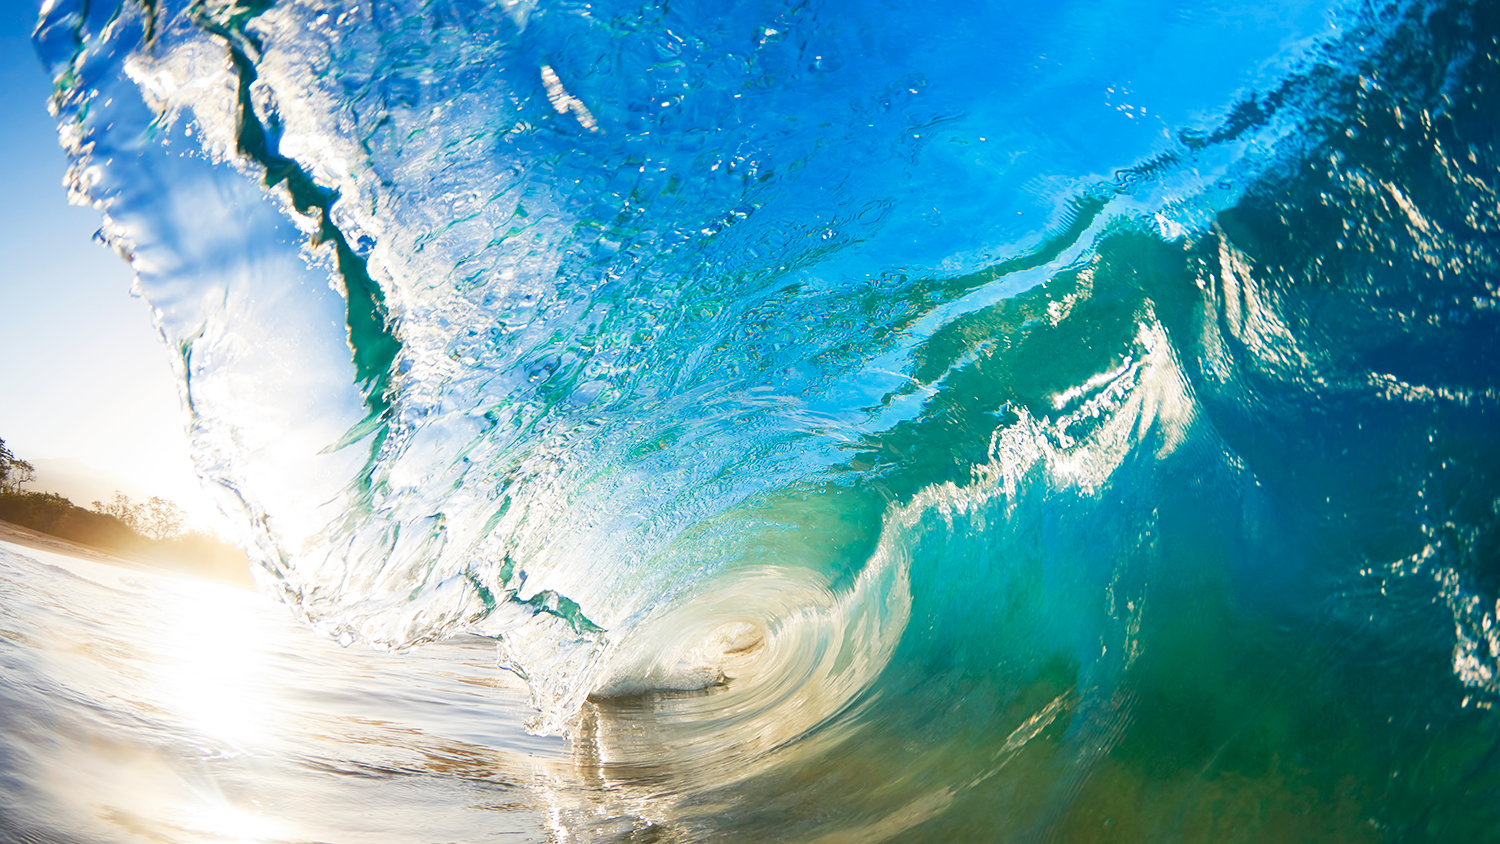 This Water Filter Could Make Seawater Drinkable